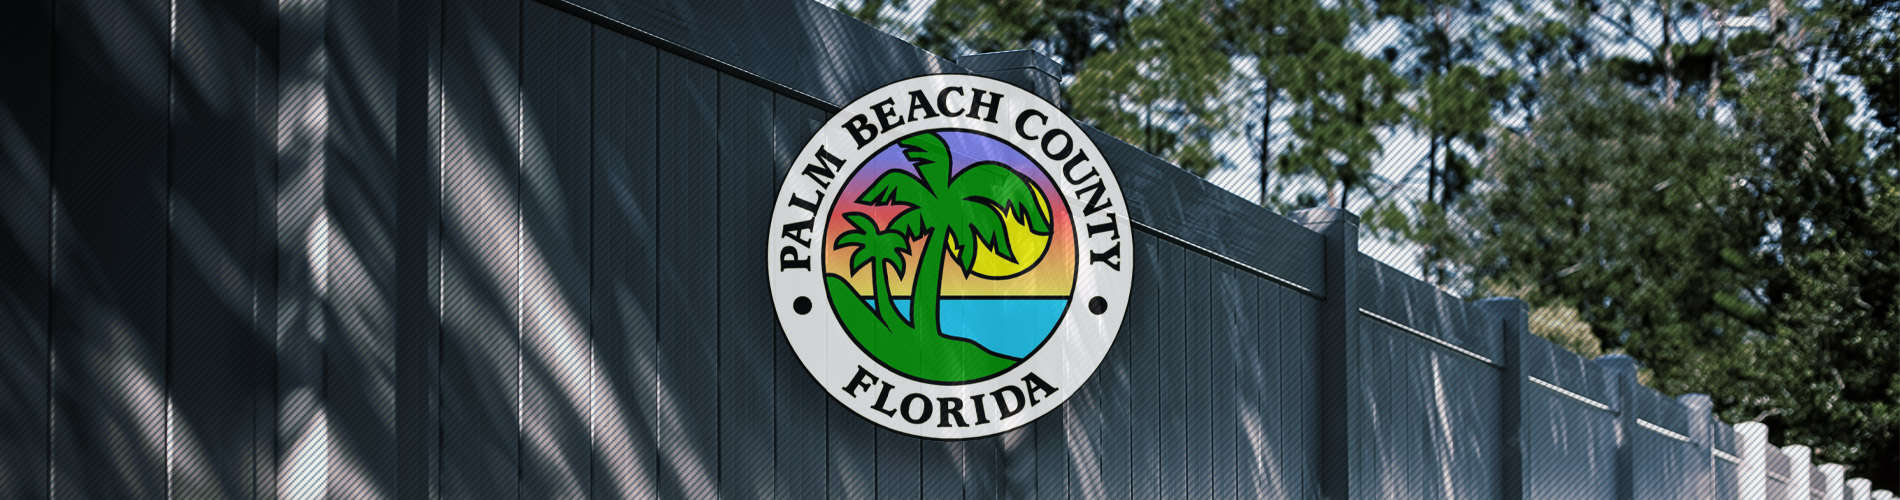 Vinyl fence with palm beach county logo